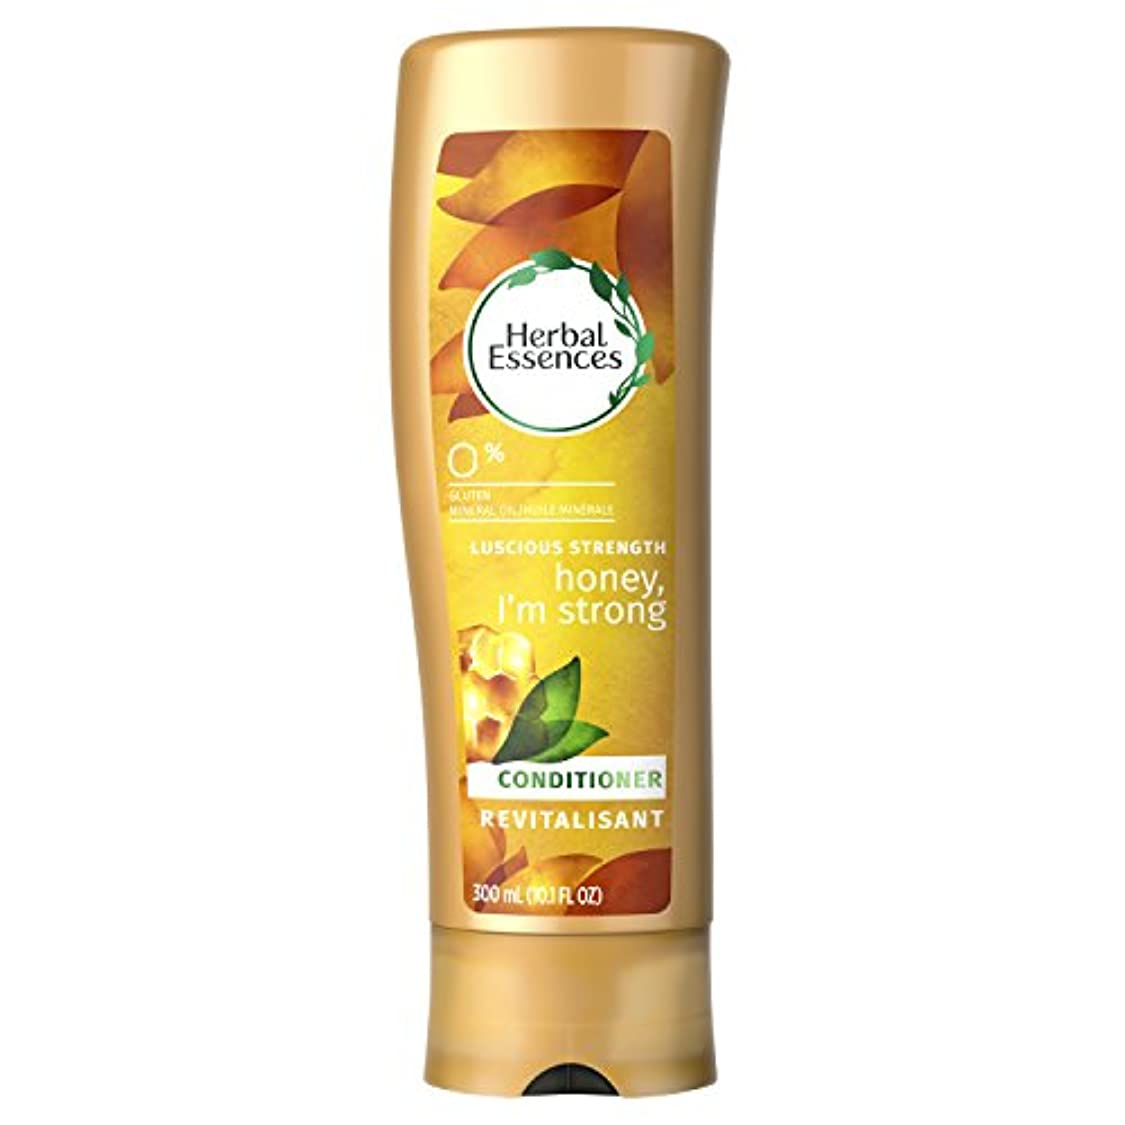 収入船尾にじみ出るHerbal Essences Honey I'm Strong Strengthening Conditioner, 10.1 Fluid Ounce by Procter & Gamble - HABA Hub [並行輸入品]